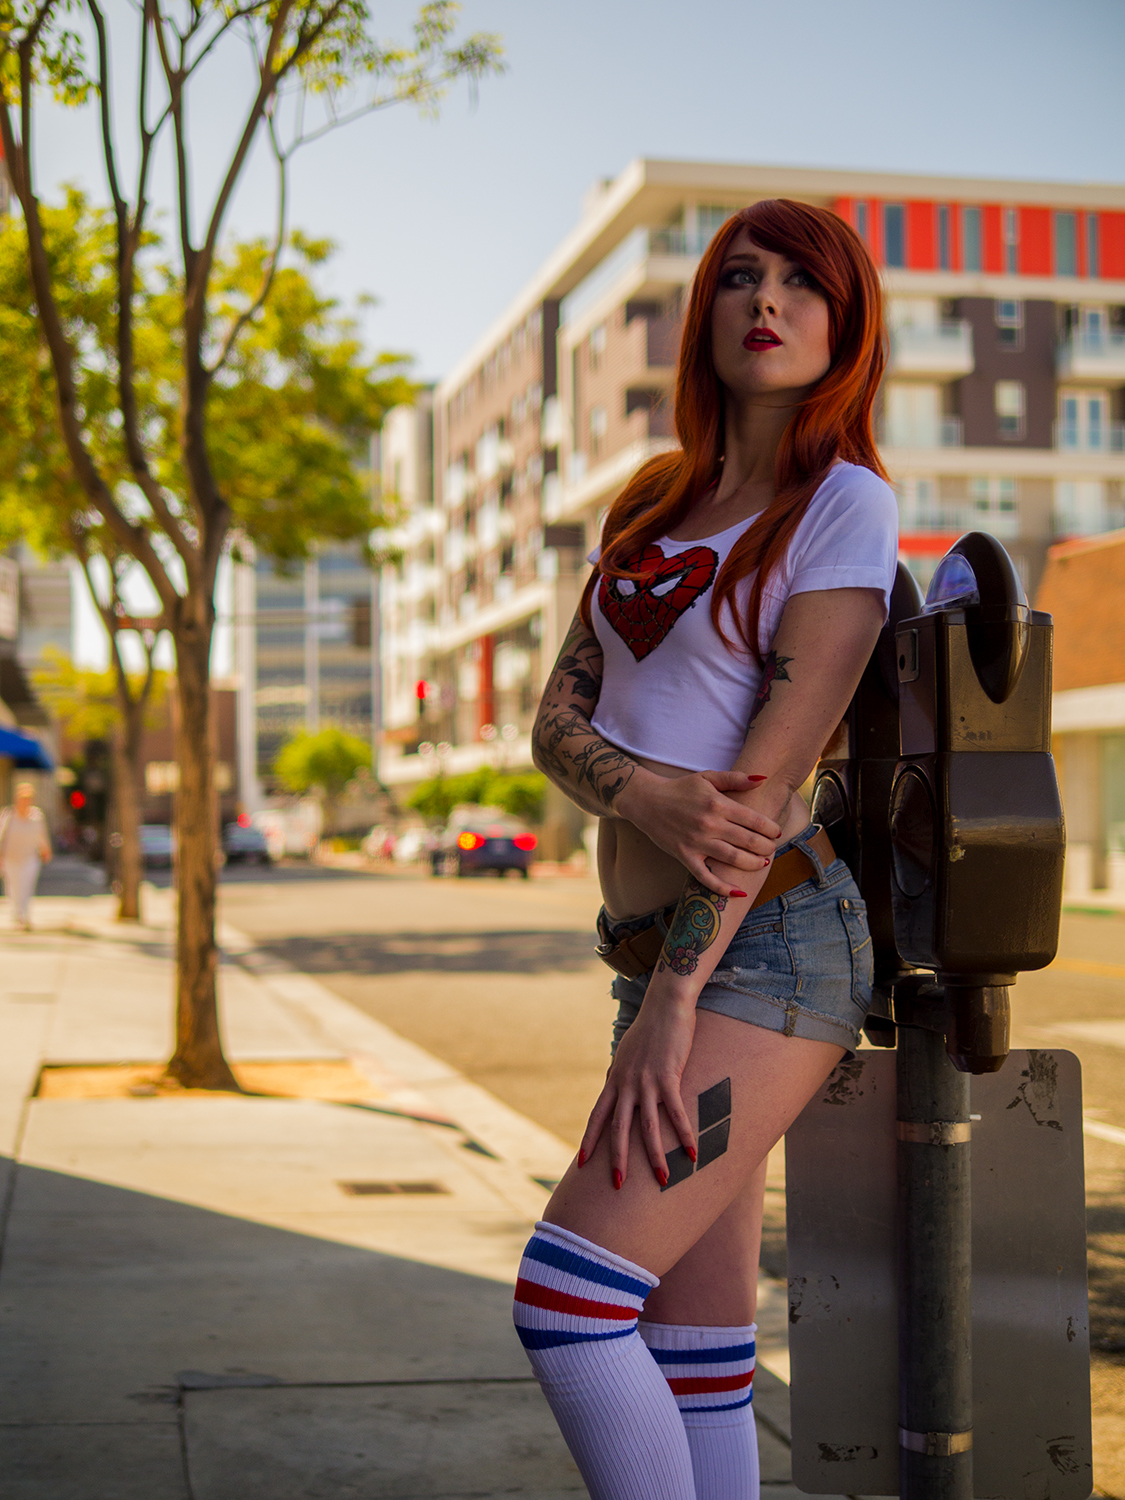 @shenaystellar as Mary Jane Watson